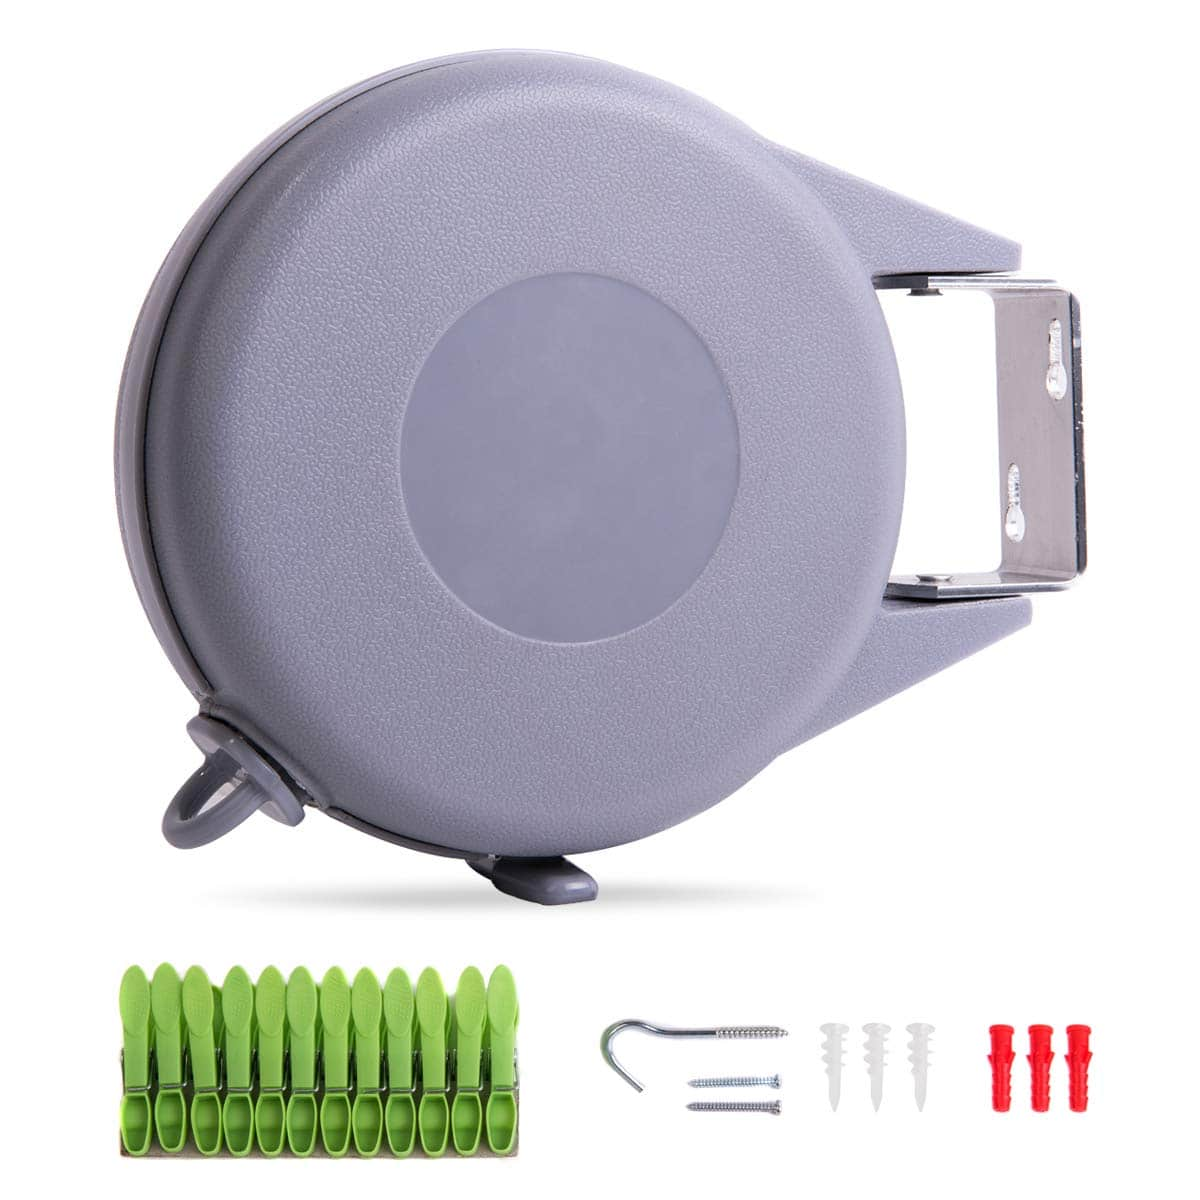 Save 30% OFF On Drynatural Retractable Clothesline Indoor/Outdoor Wall Mounted Clothes Dryer (with Code) $11.17